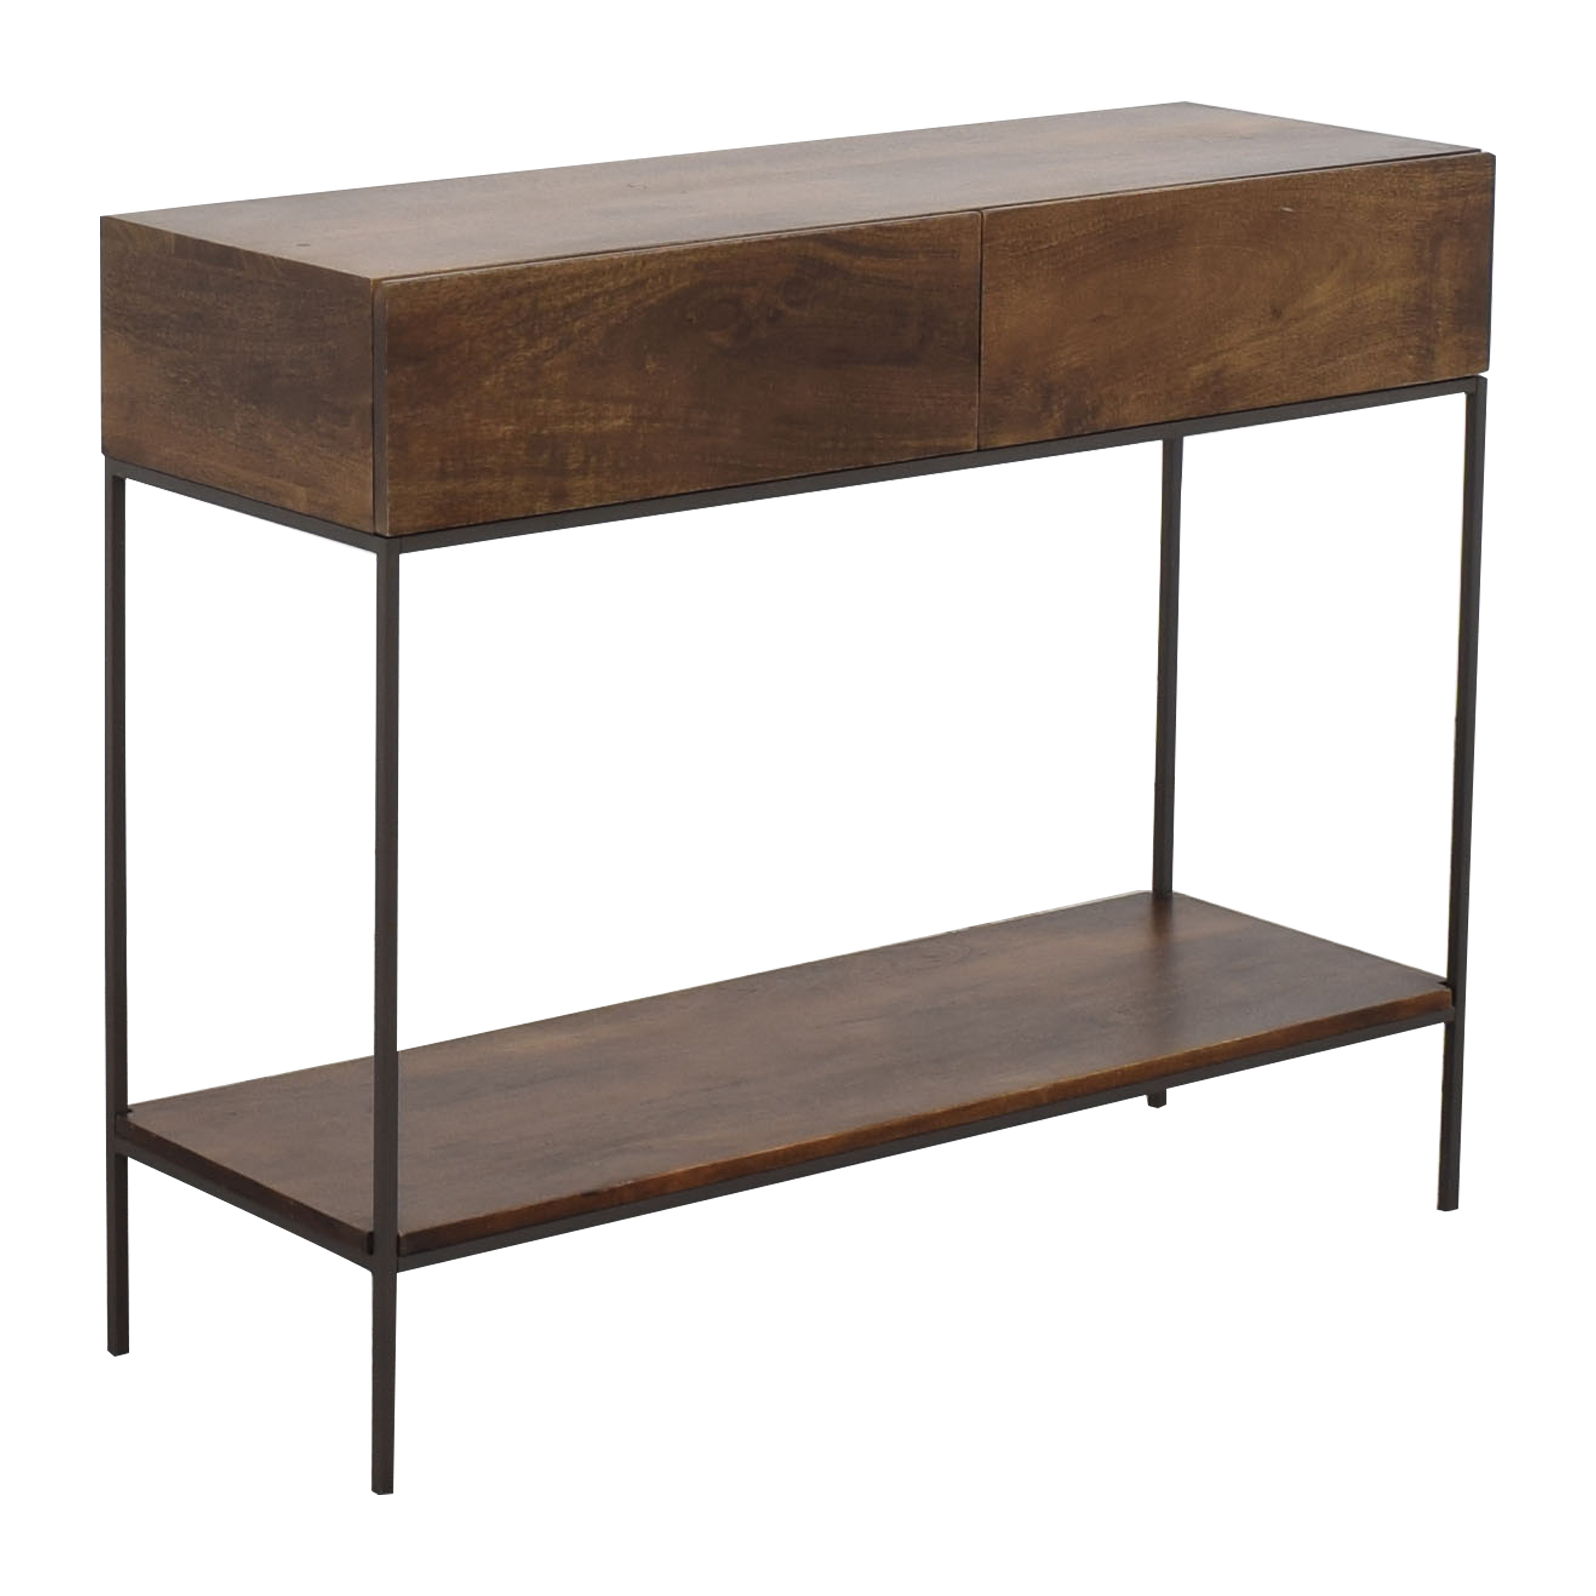 West Elm West Elm Industrial Storage Console for sale